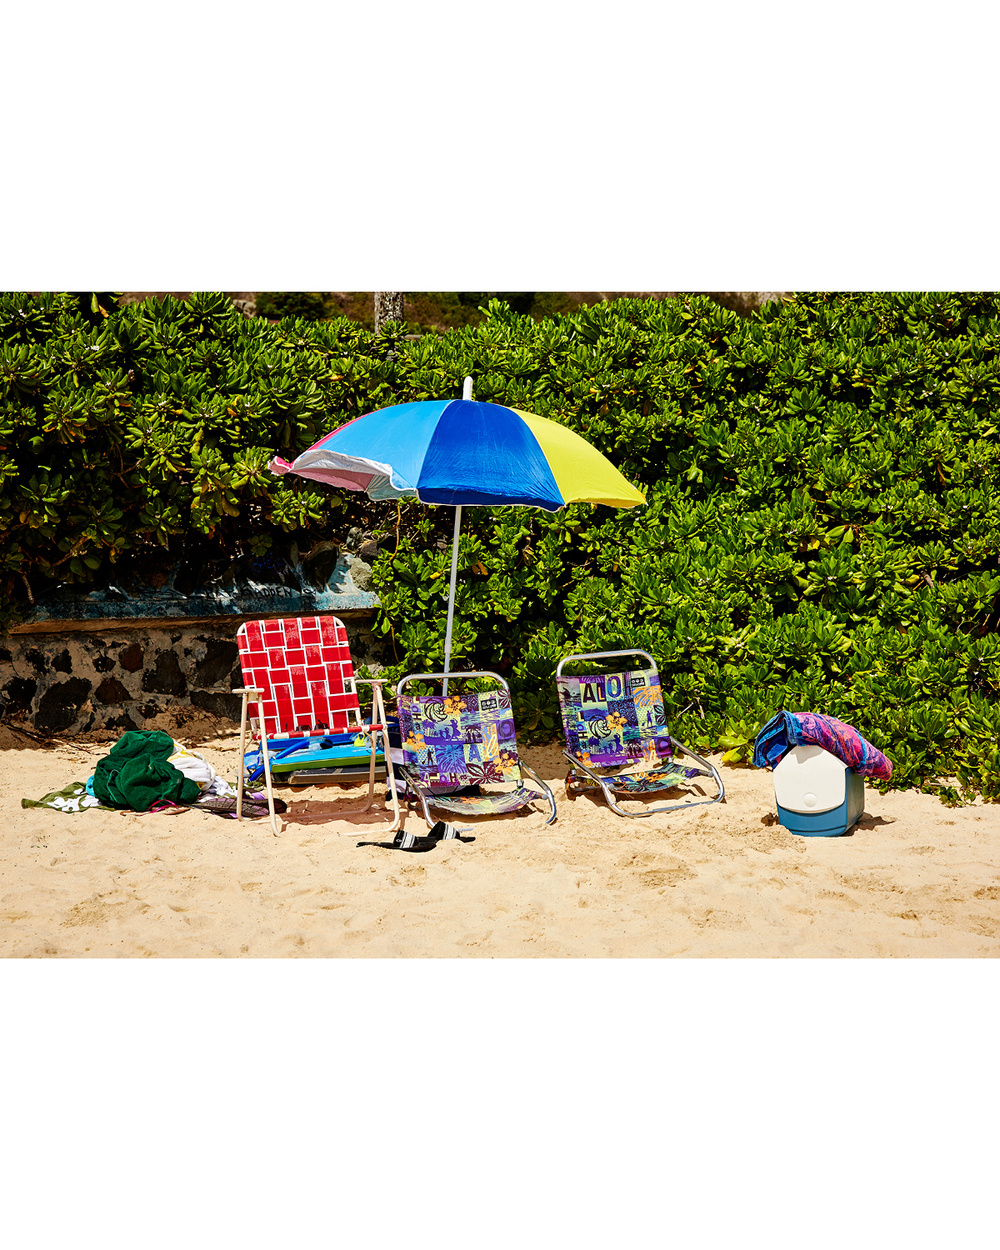 HOME FOR THE DAY, LANIKAI BEACH